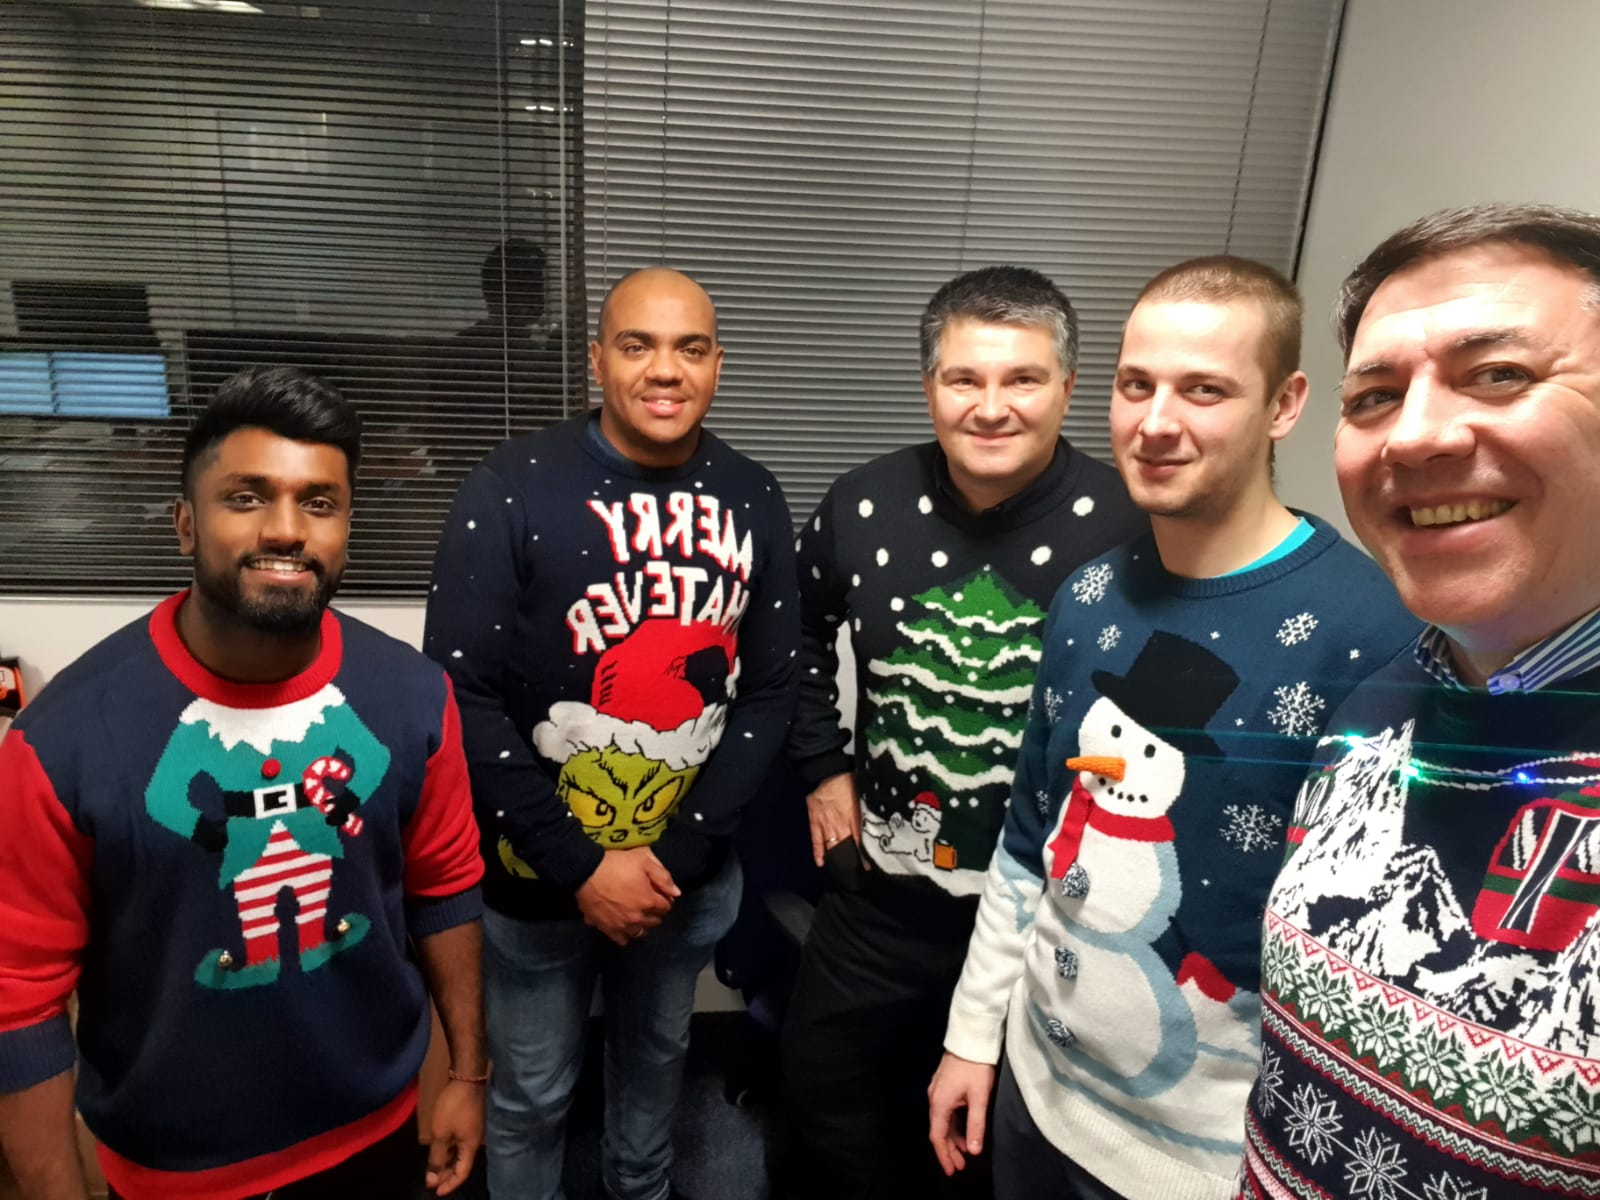 Xmas Jumper Day 13th Dec 2019